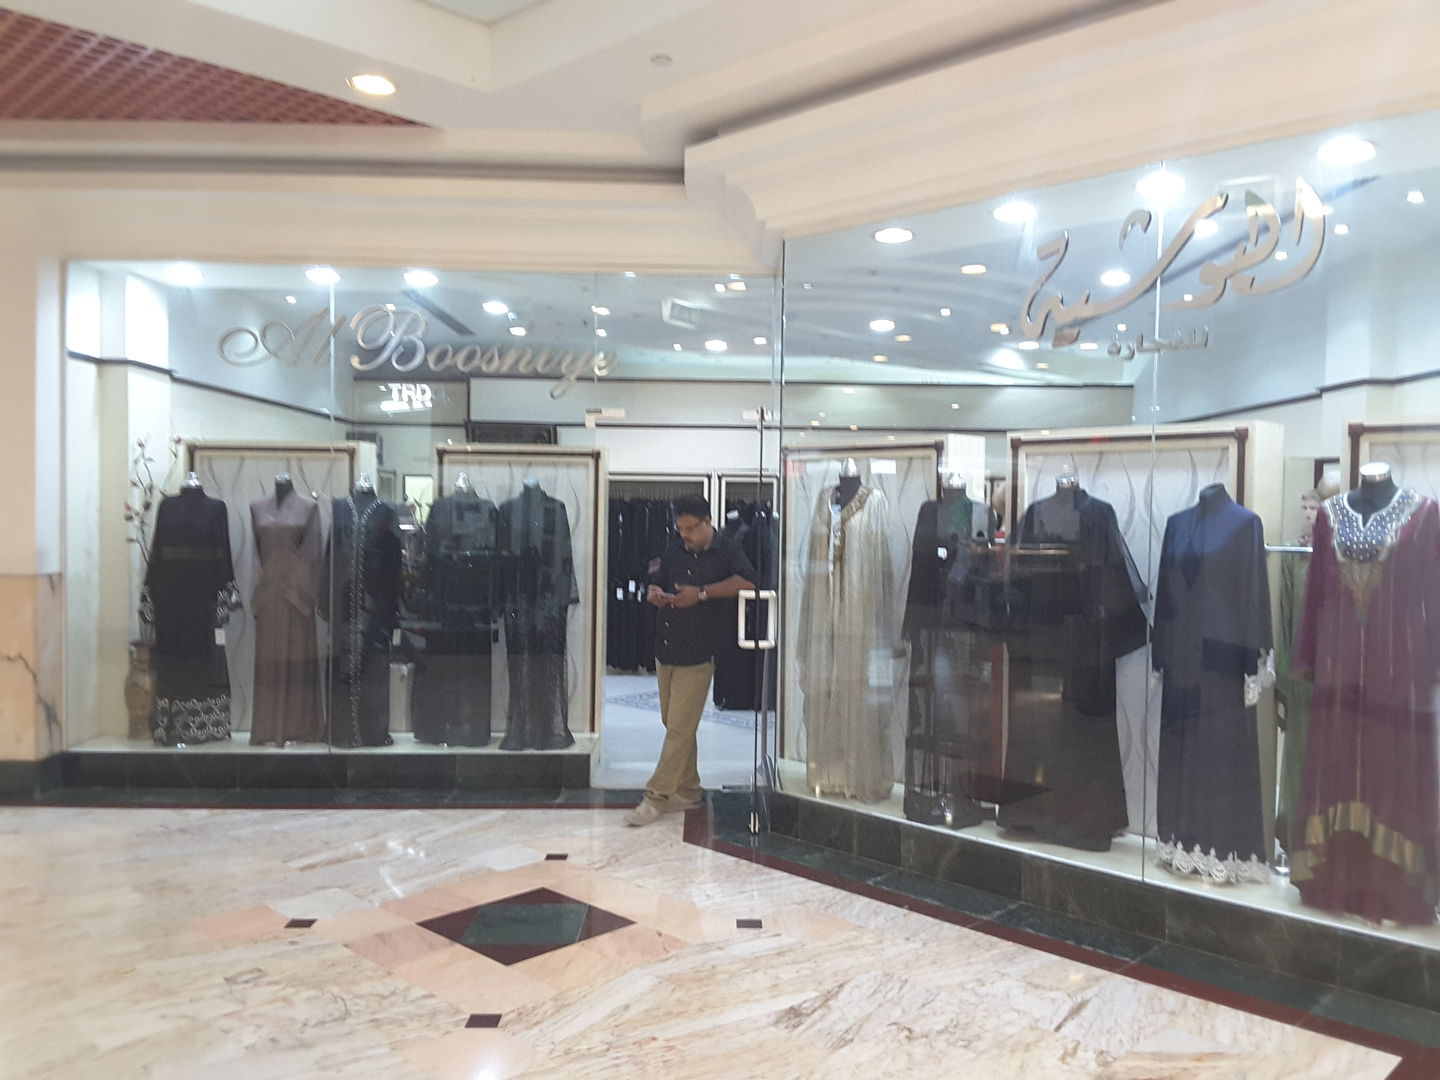 HiDubai-business-al-booshiye-trading-shopping-apparel-al-qusais-1-dubai-2